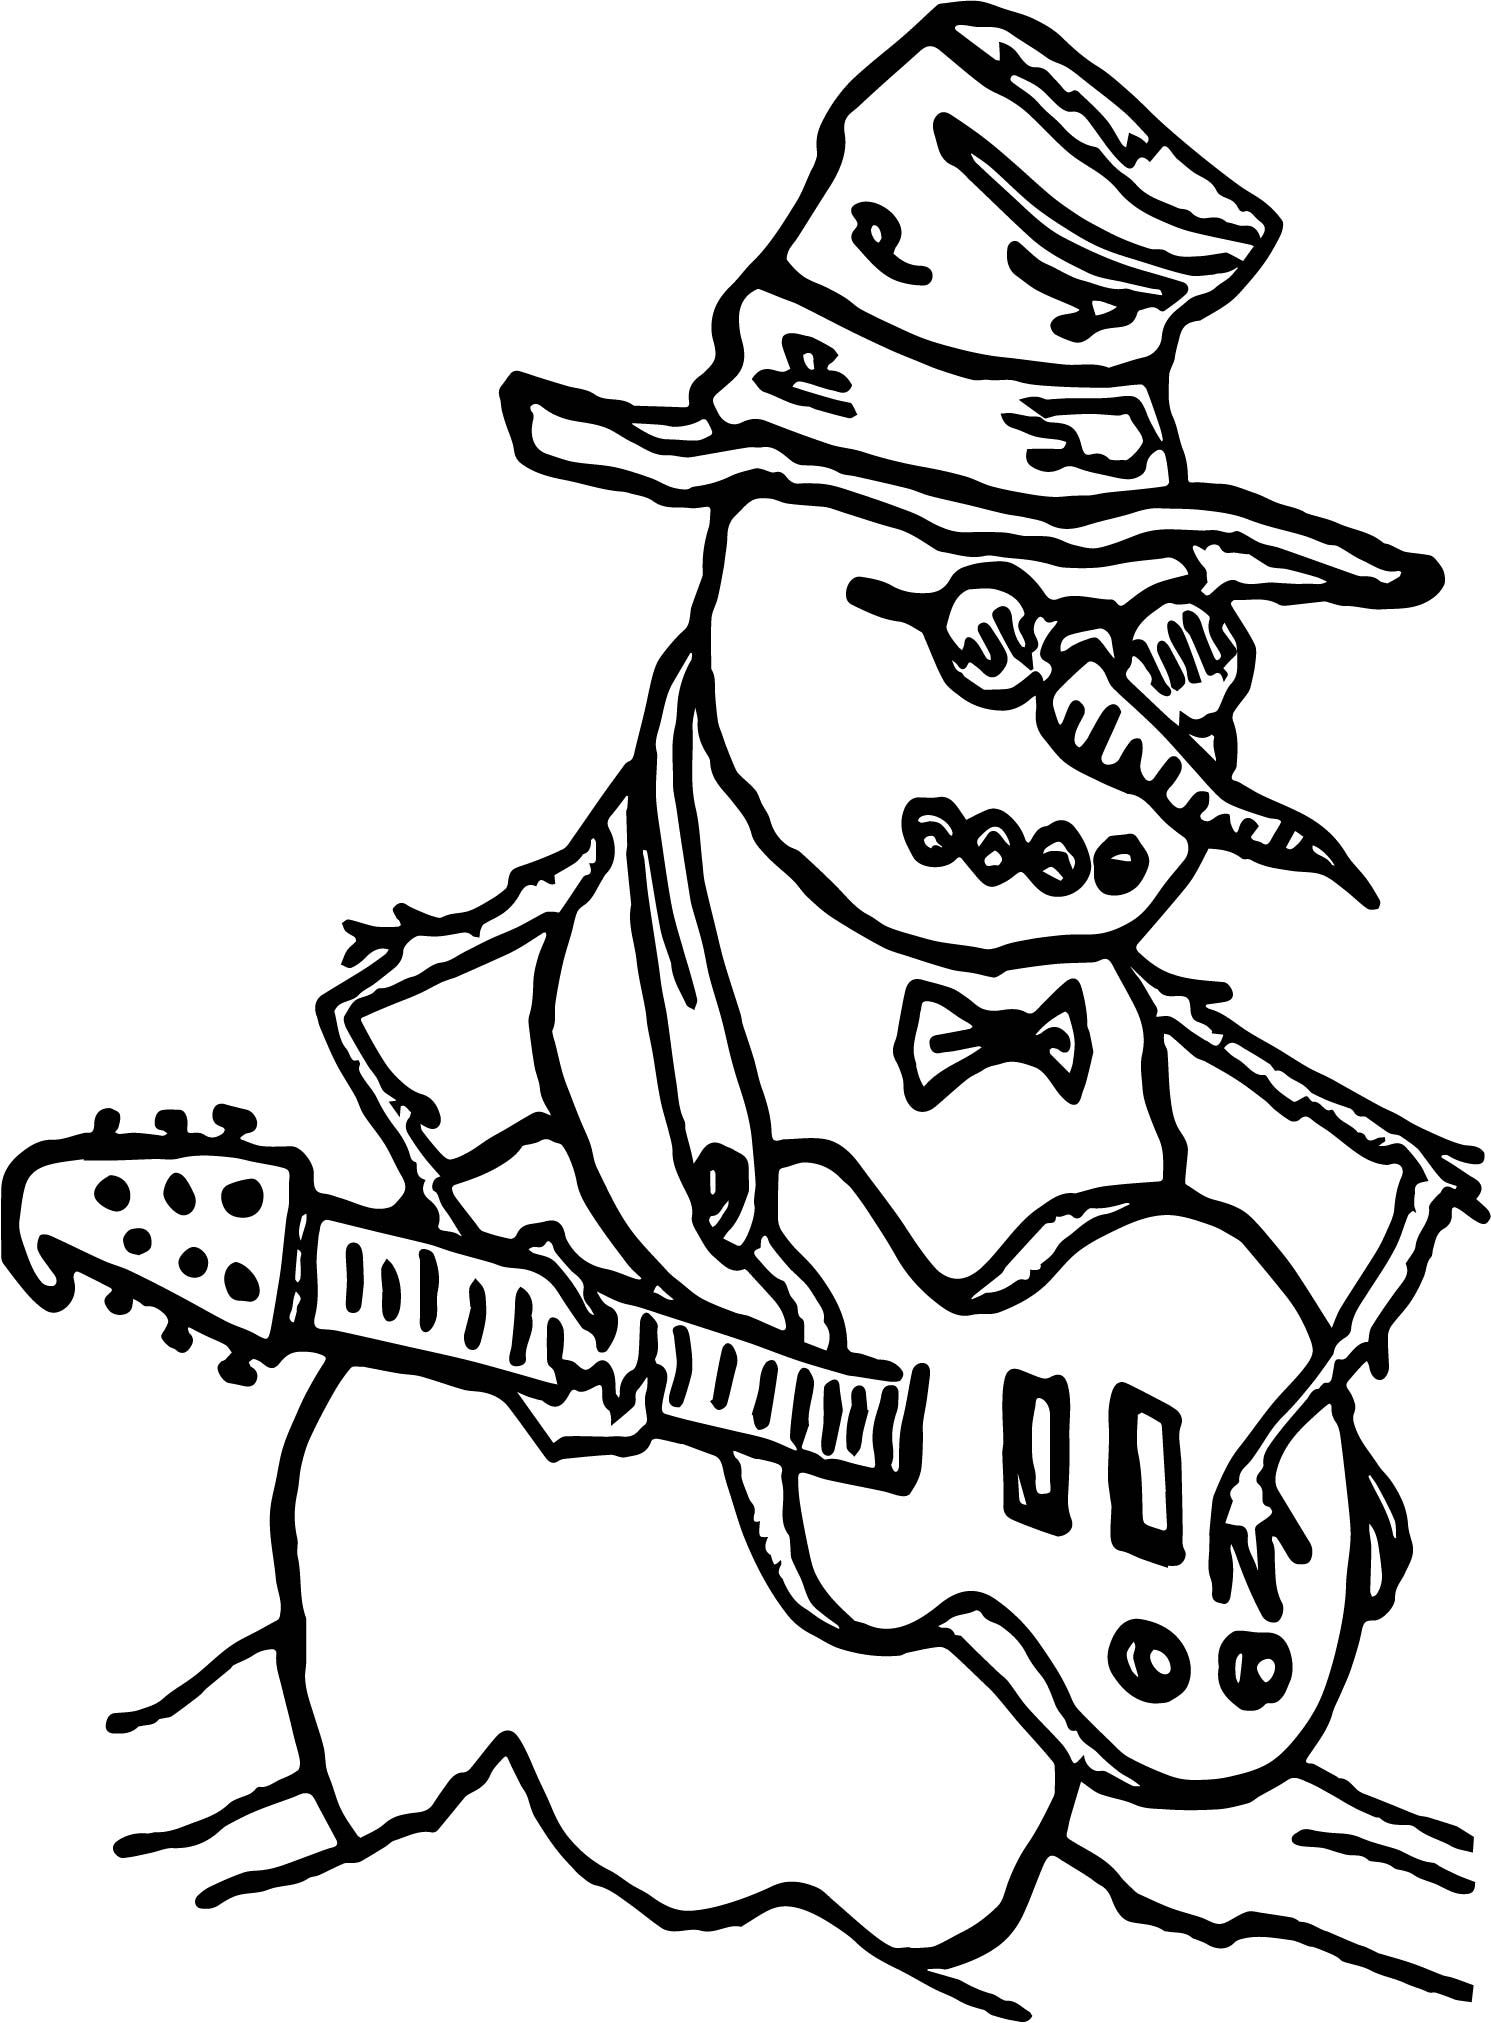 Awesome Snowman Guitar Playing The Guitar Coloring Page